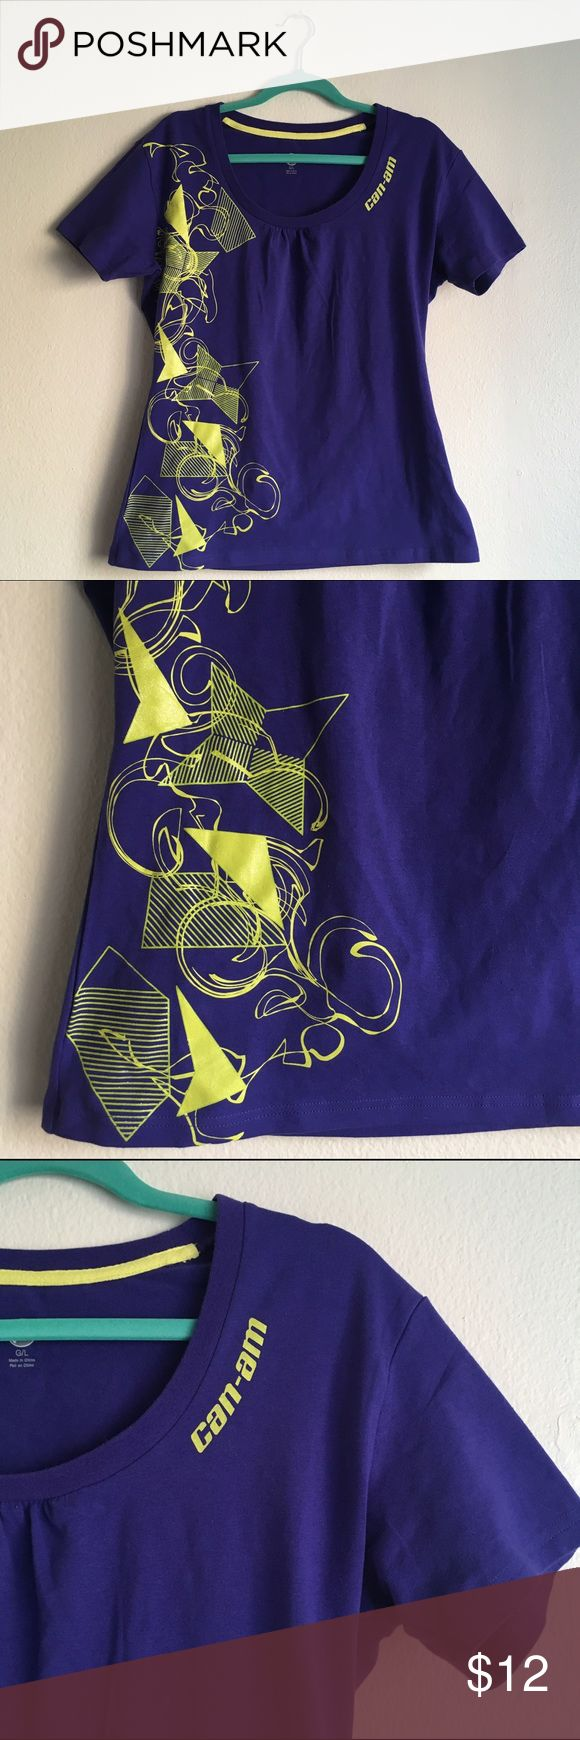 Can-Am Sport Tee - Purple and Yellow - Outdoors Stretch fabric, retains shape well. Washed once, never worn. Purple and yellow Can-Am sport tee. Great for outdoor wear, ATV riding, camping etc. Can-Am Tops Tees - Short Sleeve